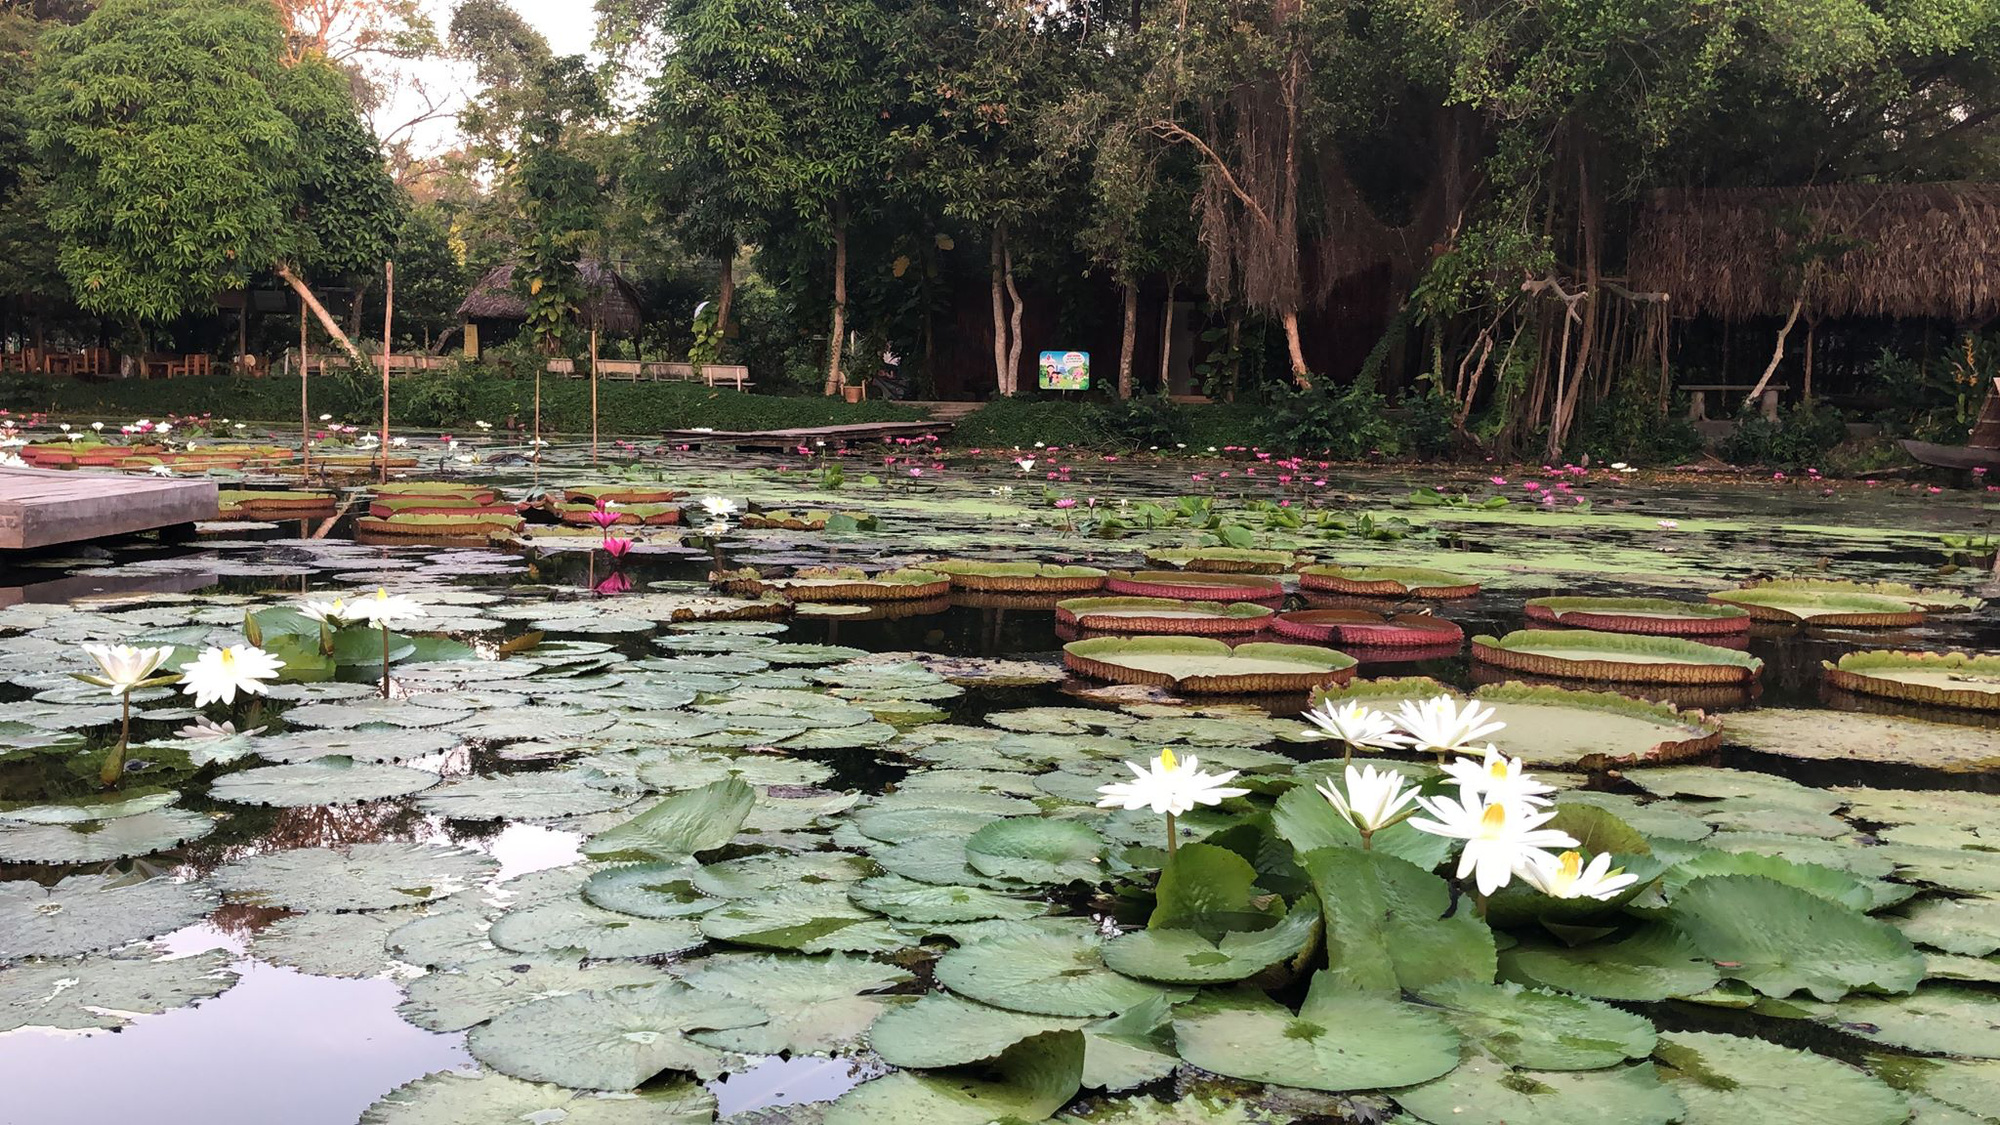 A water lily at the Xeo Quyt Tourism Area in Dong Thap Province, Vietnam. Photo: Ly Quoc Dang / Tuoi Tre